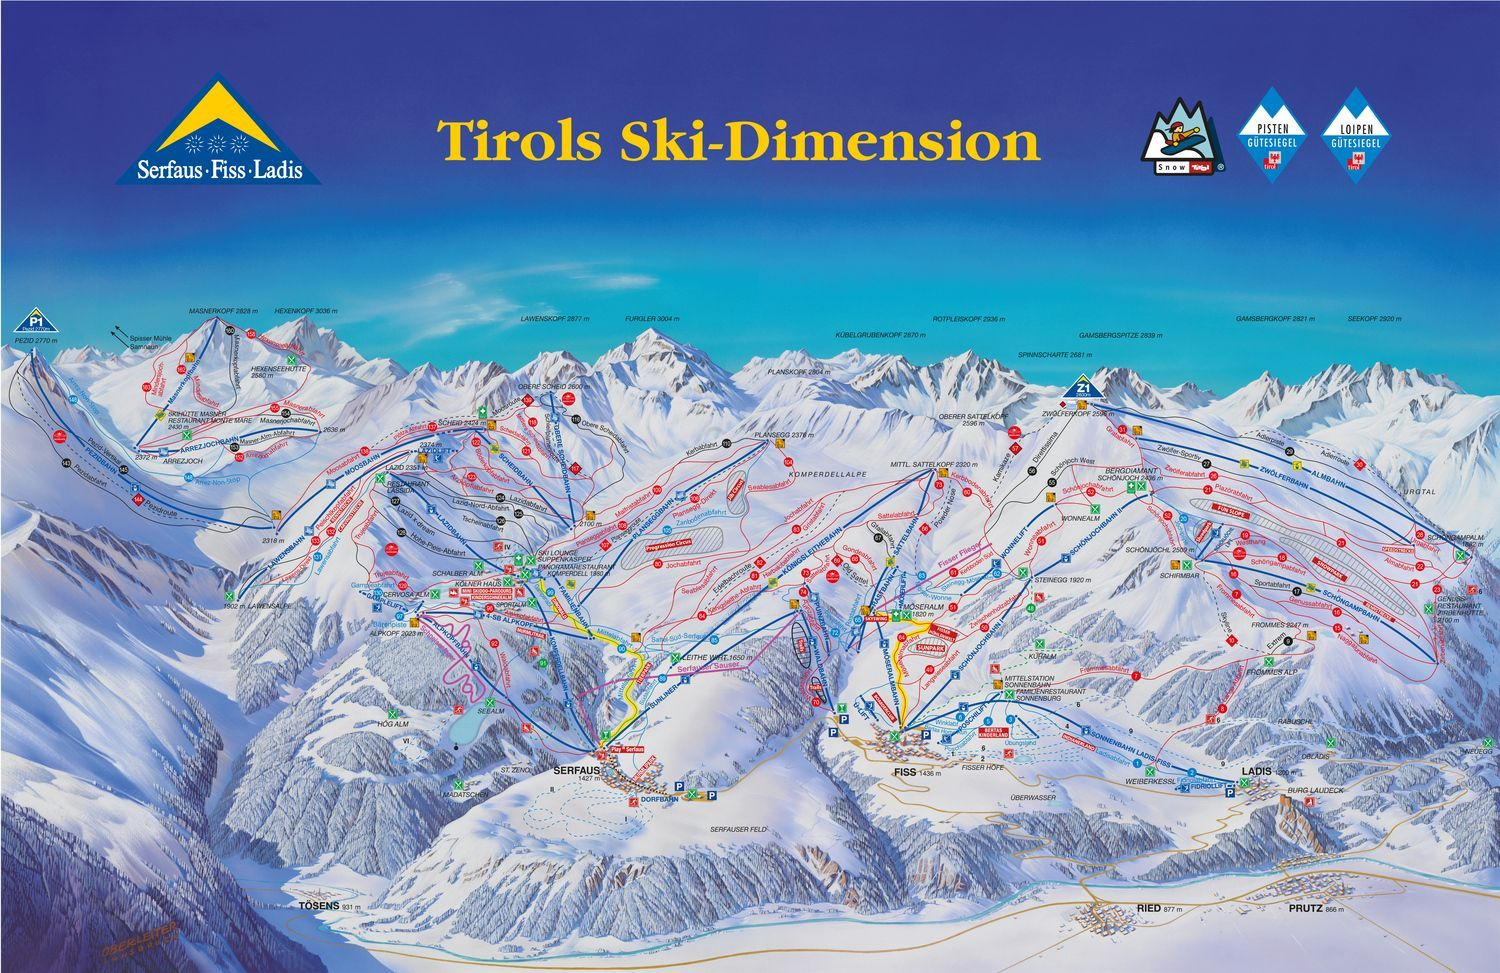 Serfaus-Fiss-Ladis - Tirols Skidimension